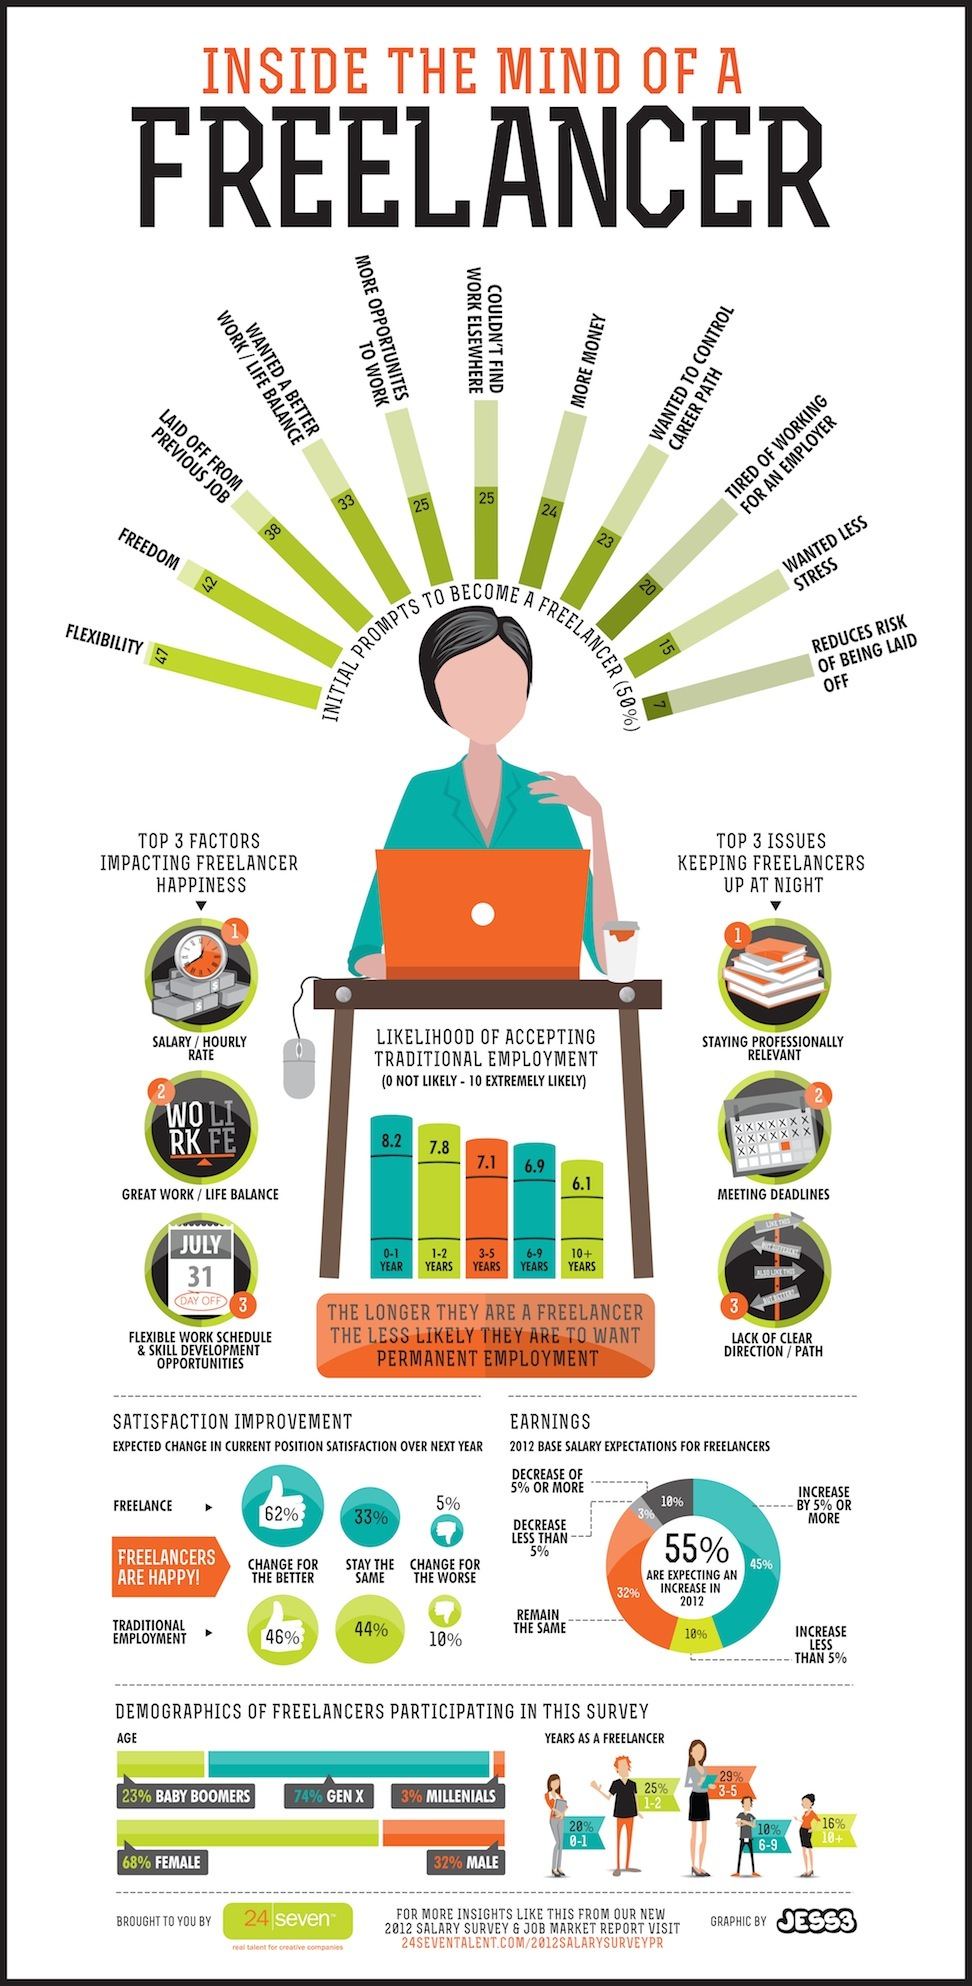 Inside-The-Mind-Of-A-Freelancer-infographic